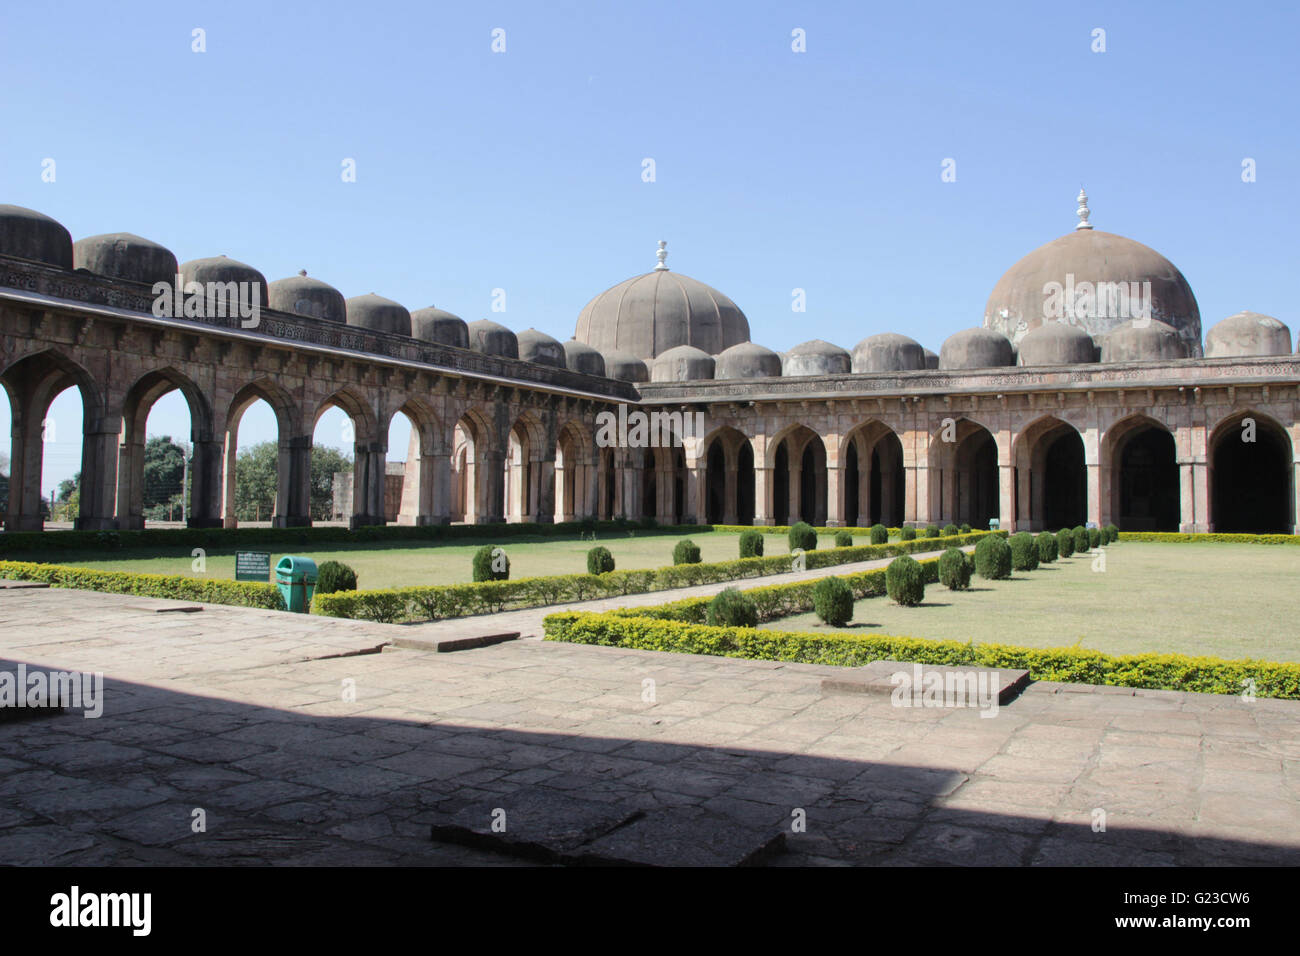 View of western prayer hall and southern arched openings at Jami Masid in Mandu, Madhya Pradesh, India, Asia - Stock Image